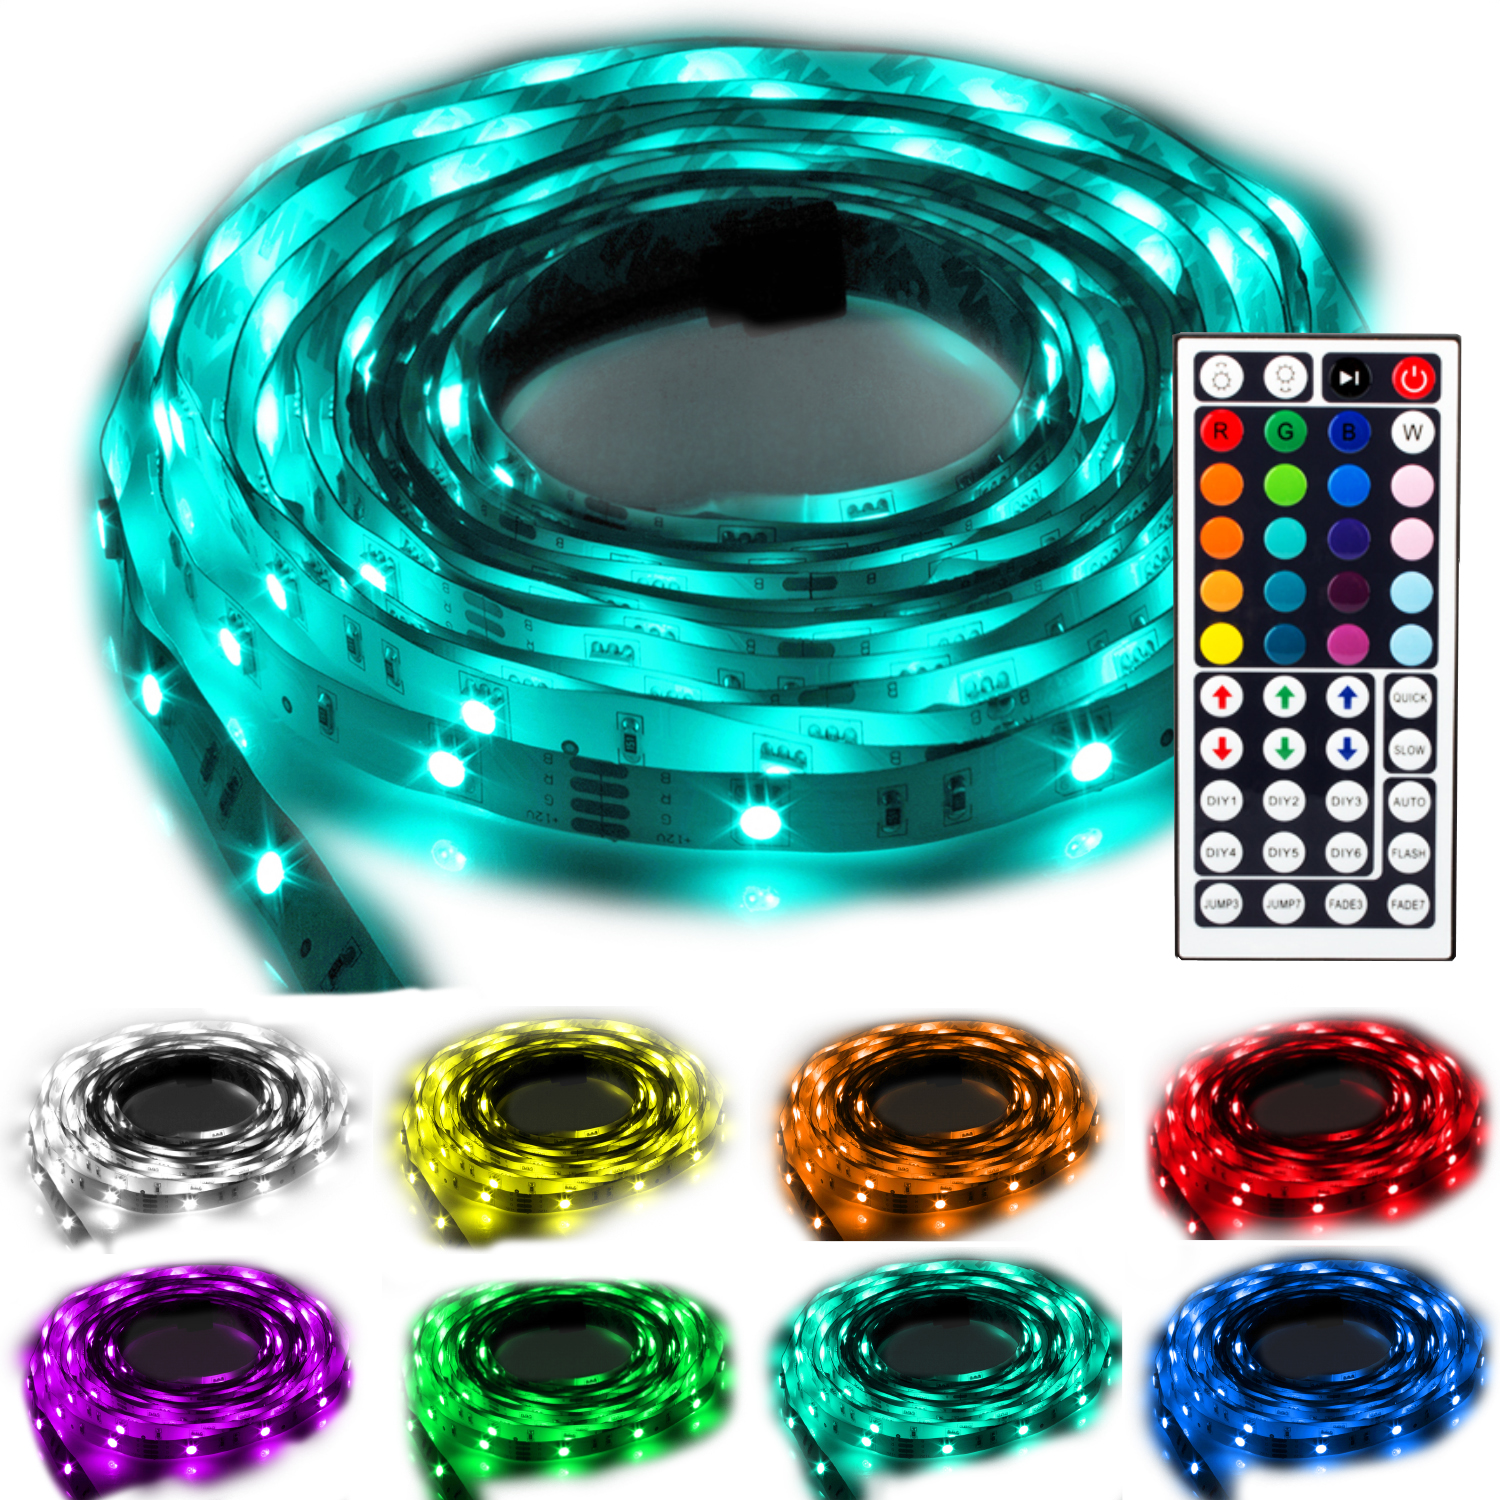 ninetec flash30 5m led stripe band kette rgb 44 key fernbedienung dimmbar ip20 ebay. Black Bedroom Furniture Sets. Home Design Ideas